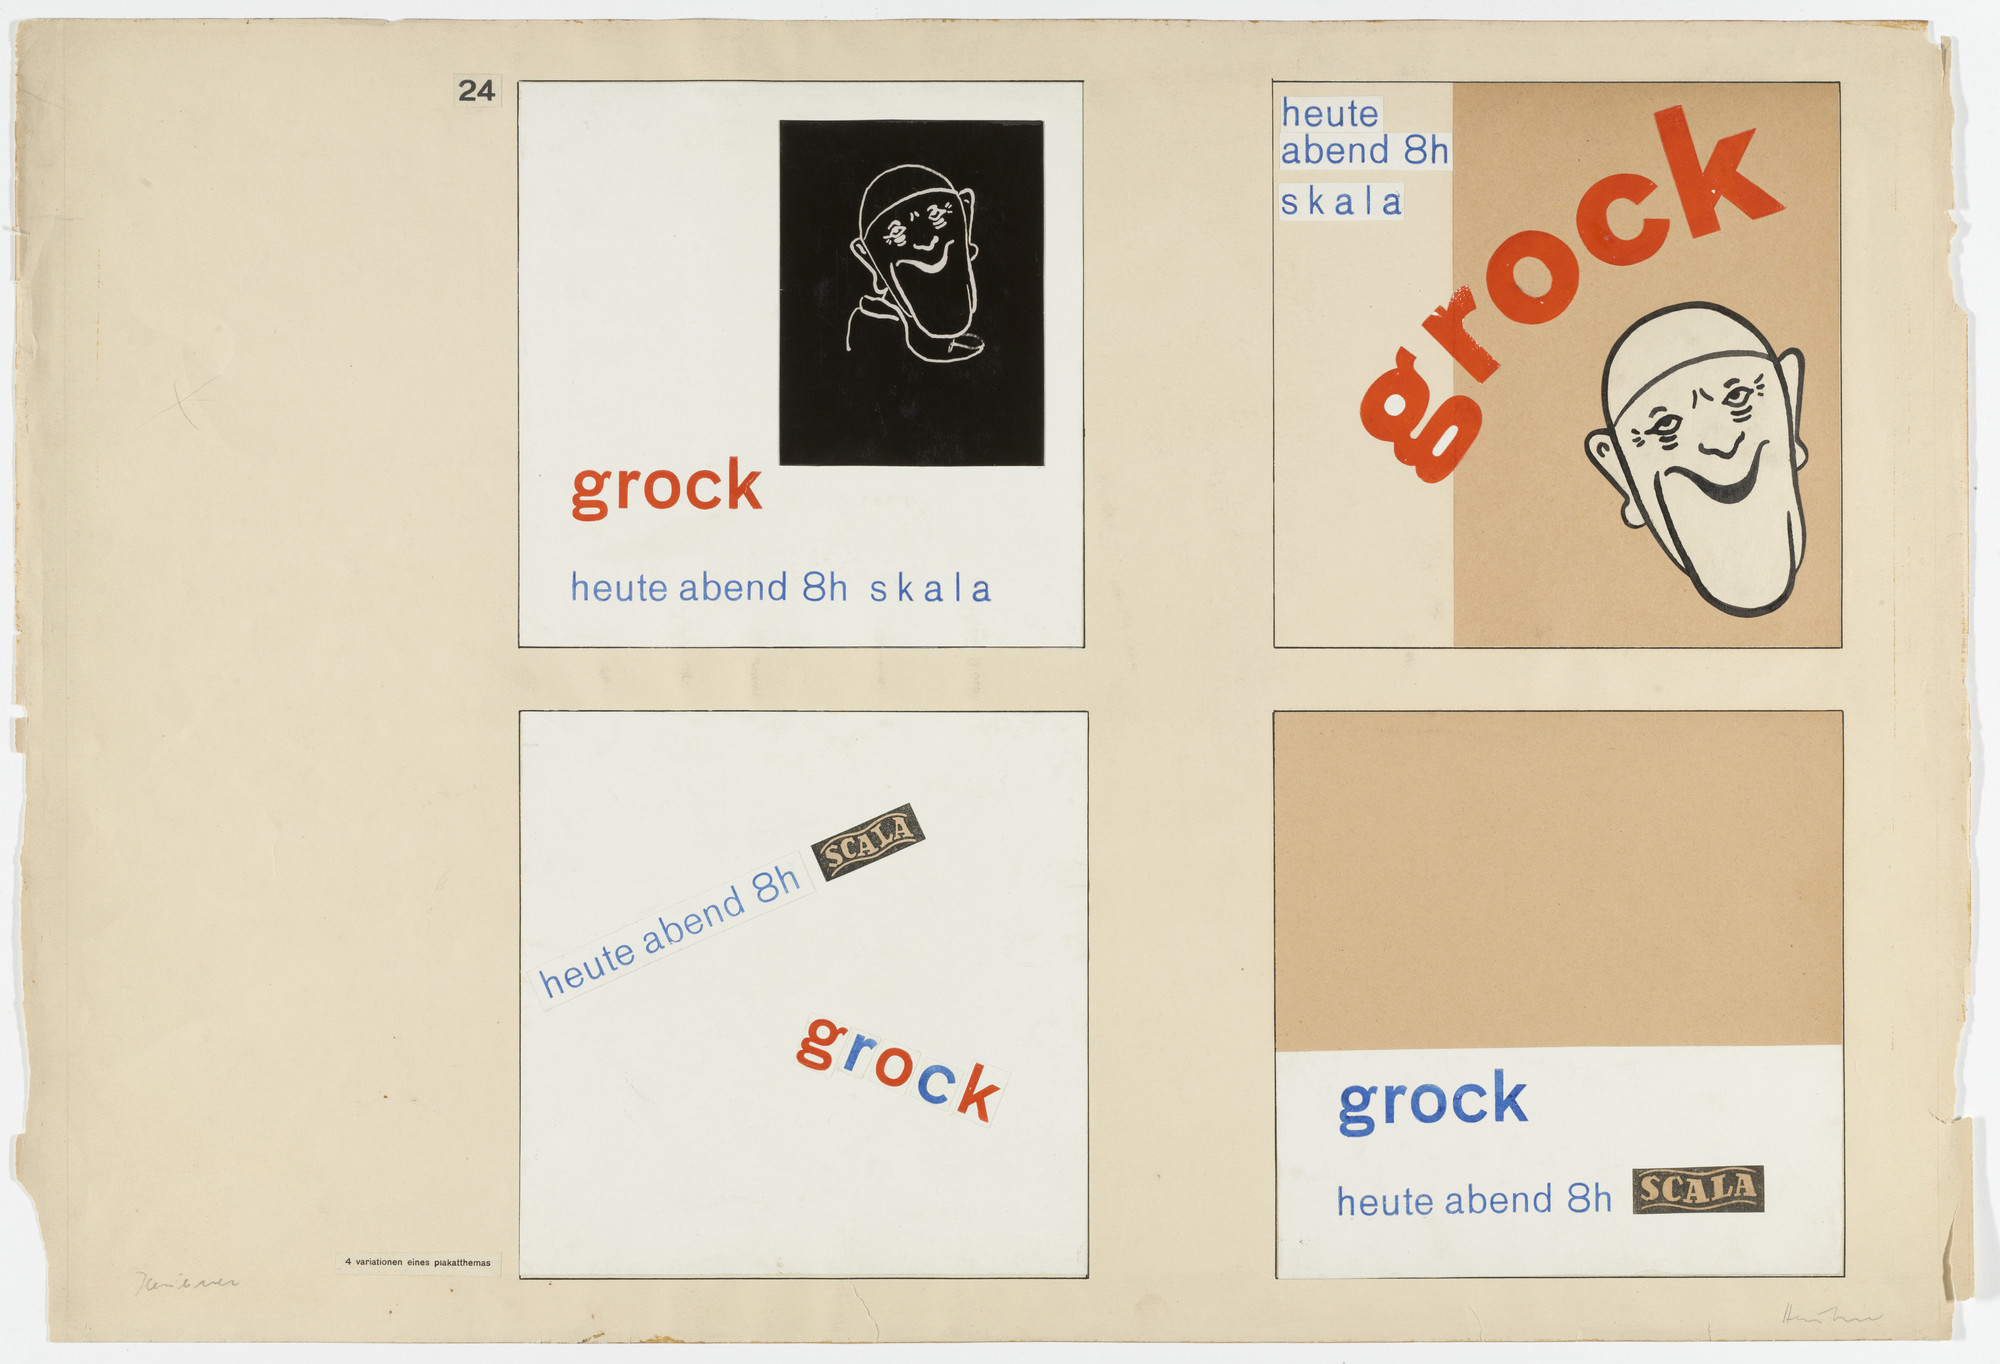 Albrecht Heubner. Variations on Poster Themes (From Joost Schmidt's Bauhaus Design Course). 1930–1933